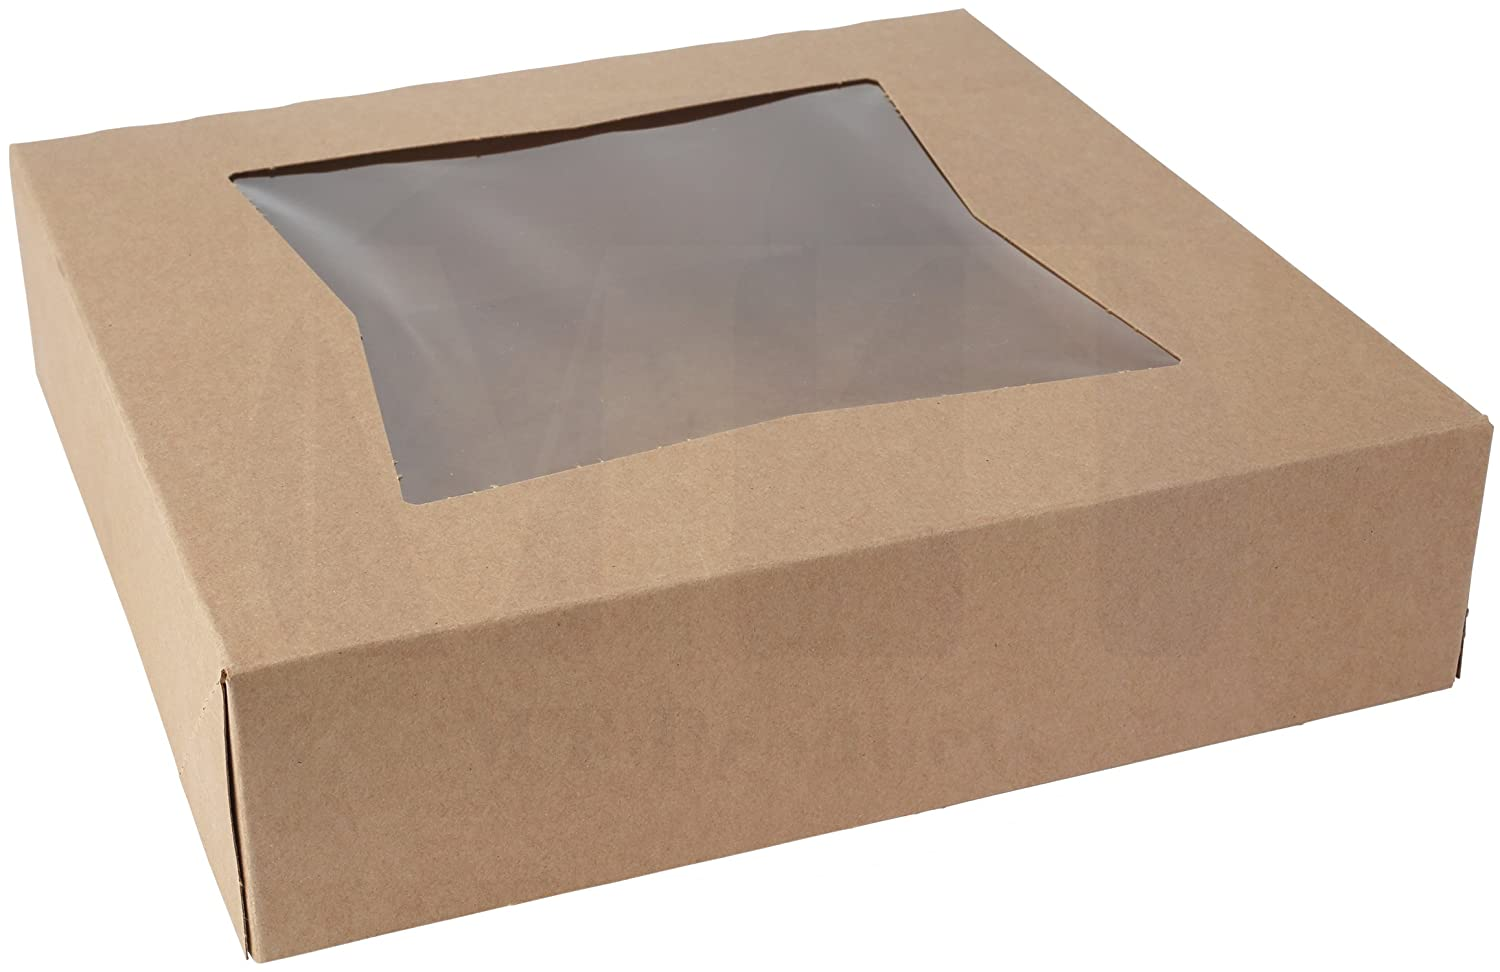 "Kraft Paperboard Bakery Box 8"" L x 8"" W x 2 ½"" H - Brown Pastry Box with Auto-Popup Window by MT Products (25 Pieces)"